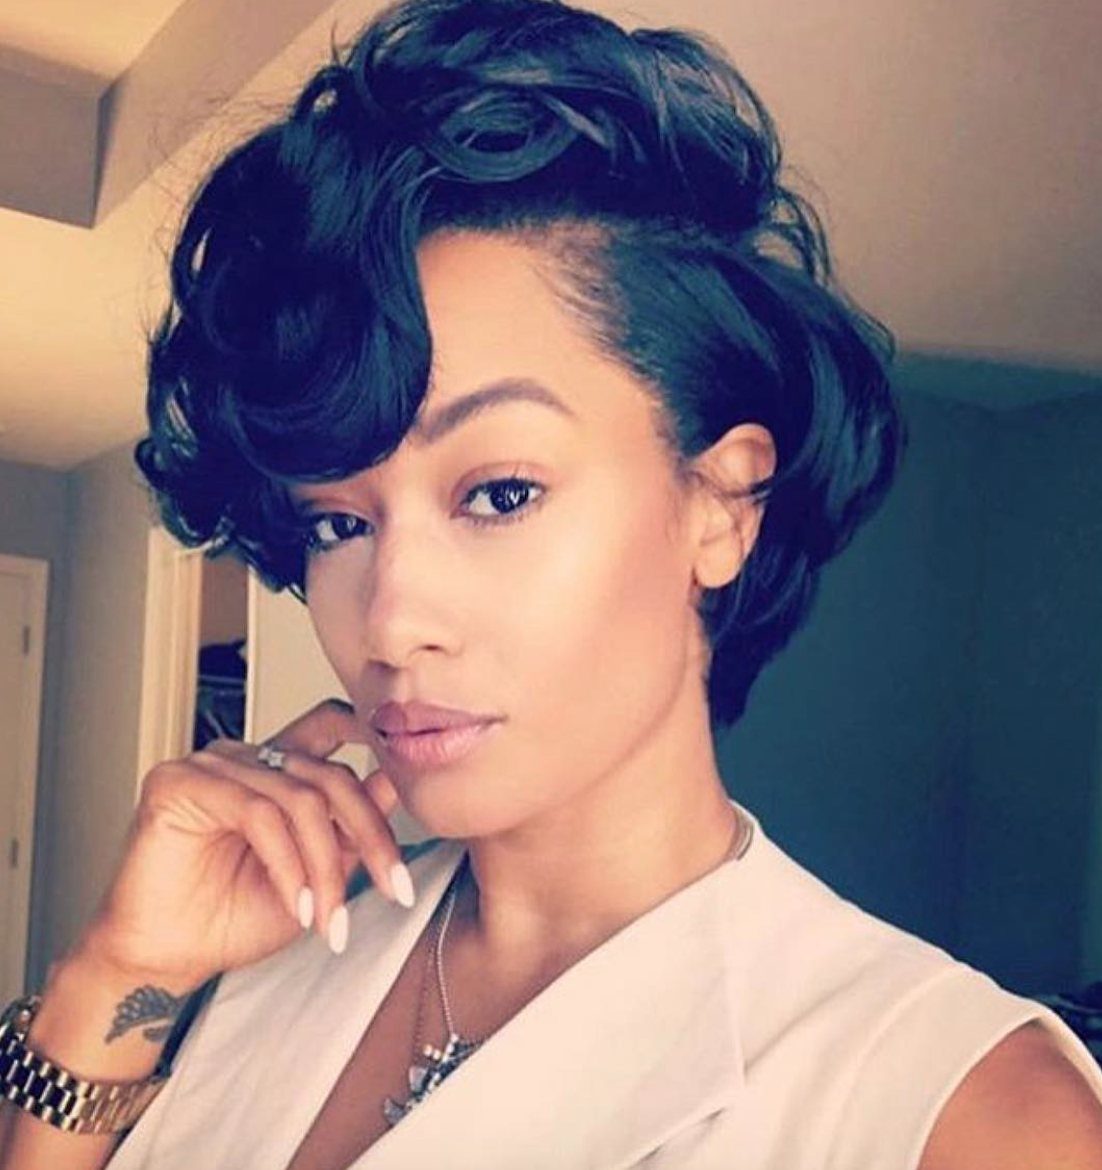 Pictures Of Short Black Hairstyles Inspiration Beautiful Luvcrystalrenee  Httpsblackhairinformation